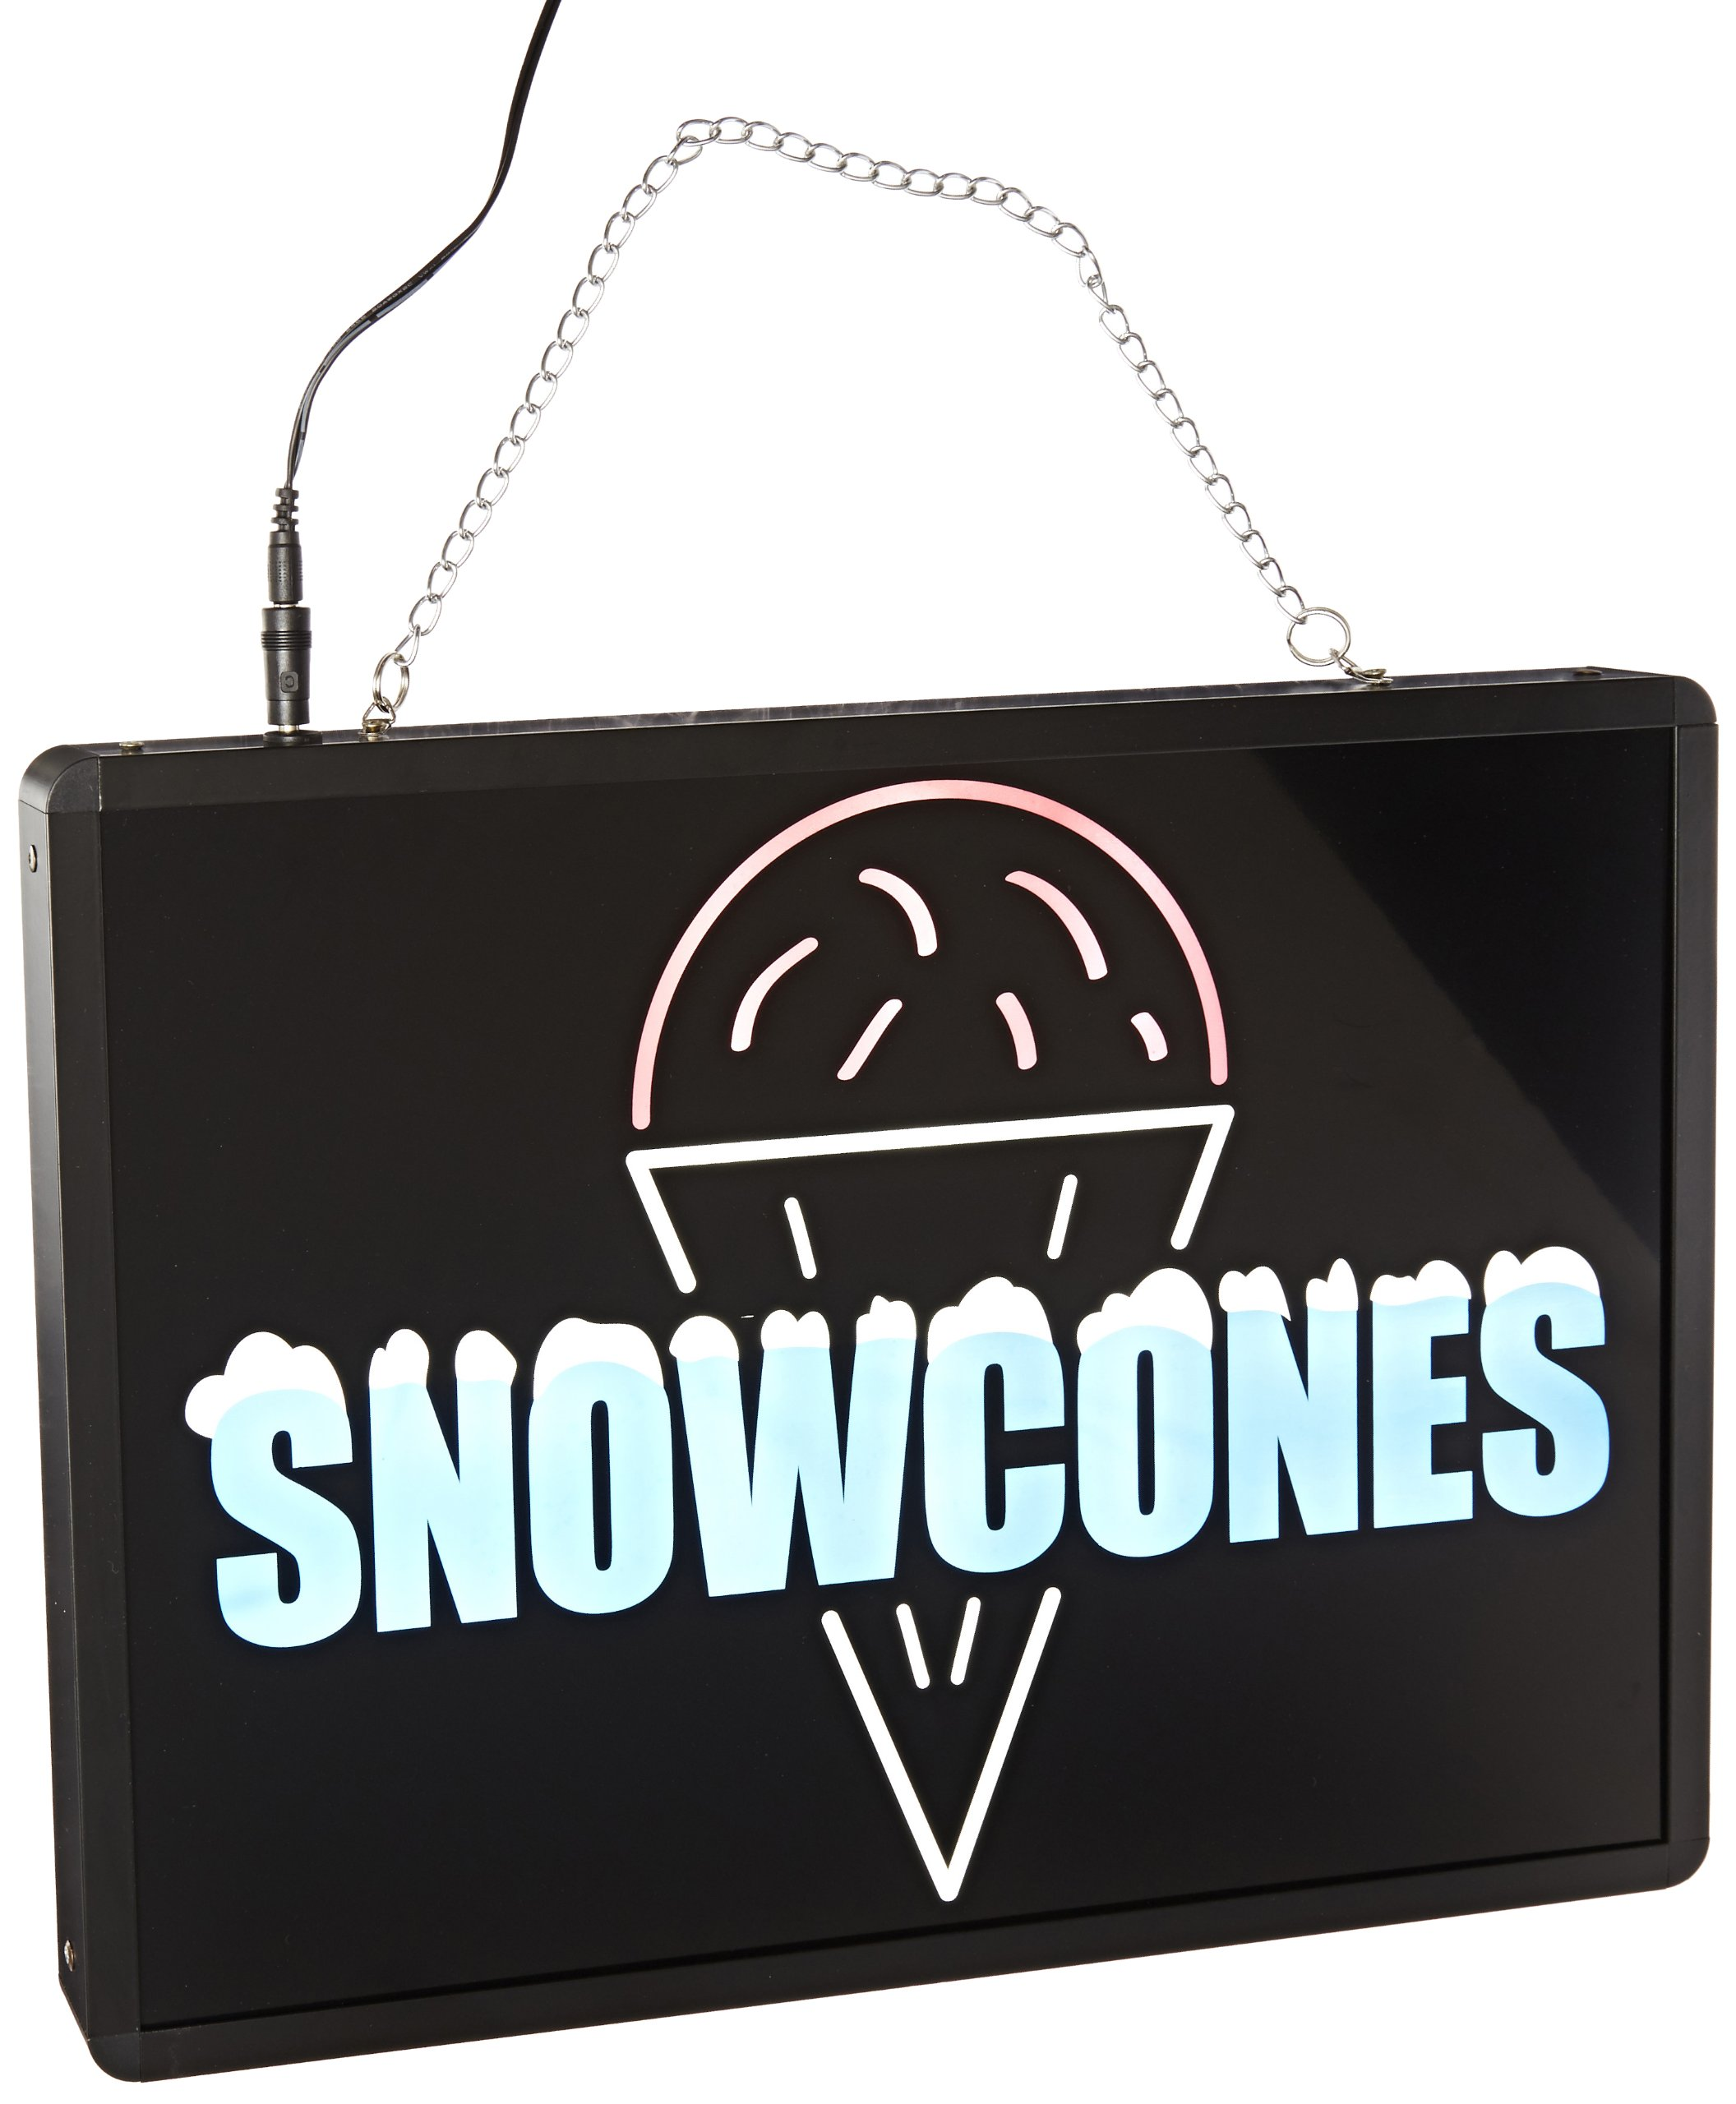 Benchmark 92003 Ultra-Bright Sign, Snow Cones, 17'' Length x 13'' Width x 1-1/4'' Height